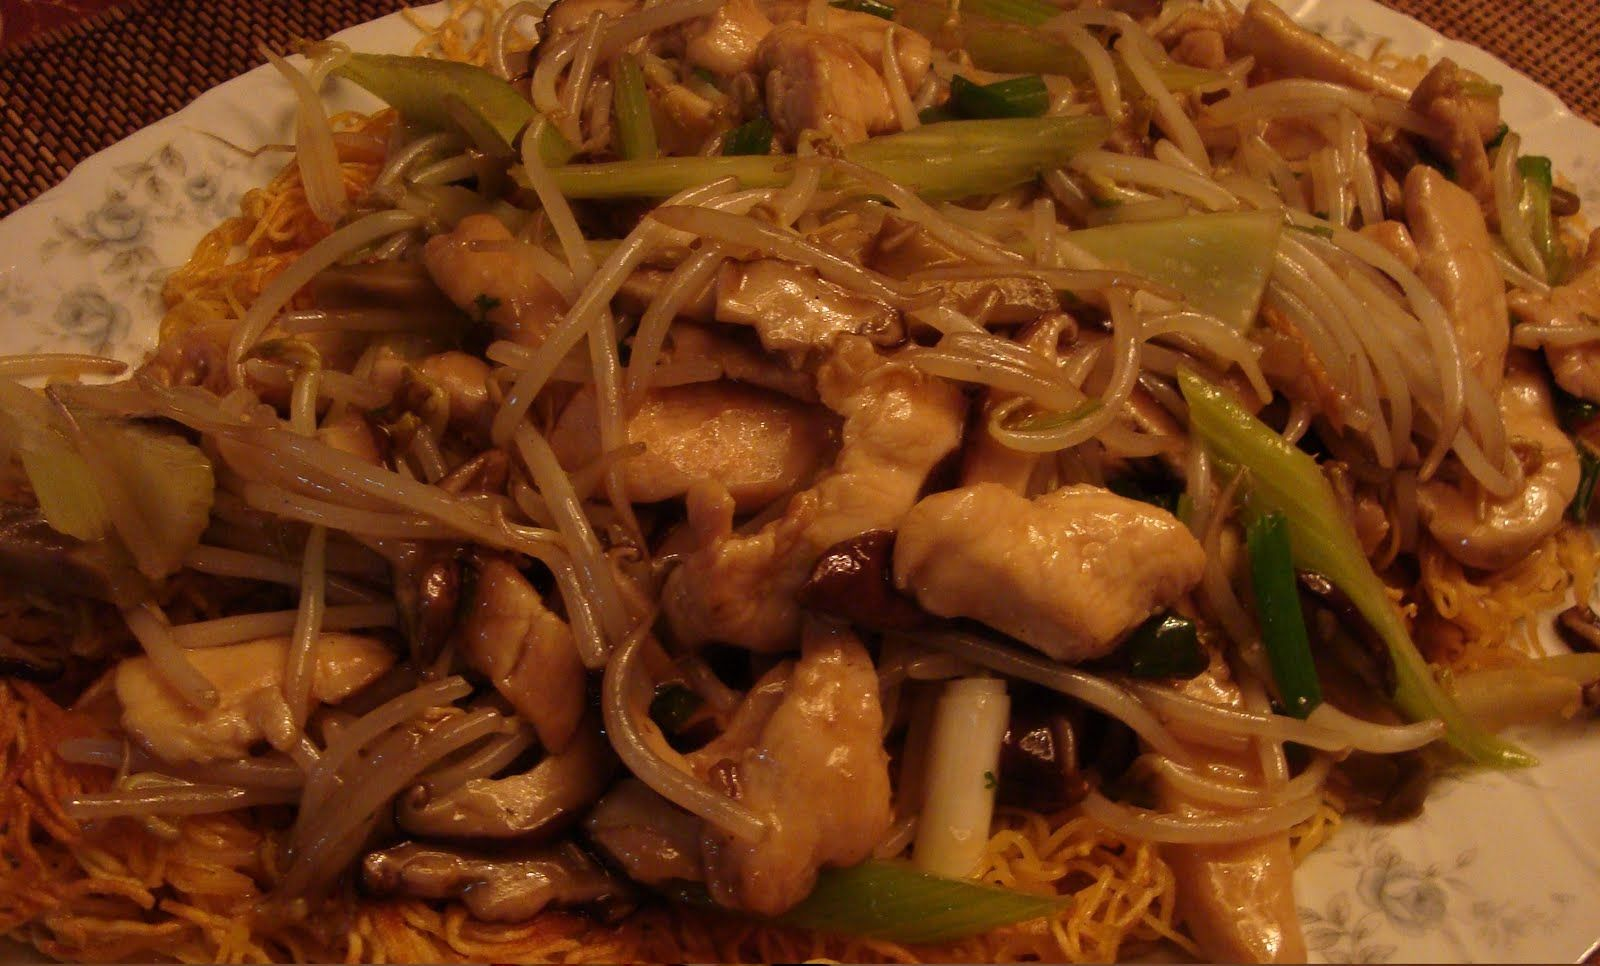 chinese restaurants used to serve chicken chow mein using